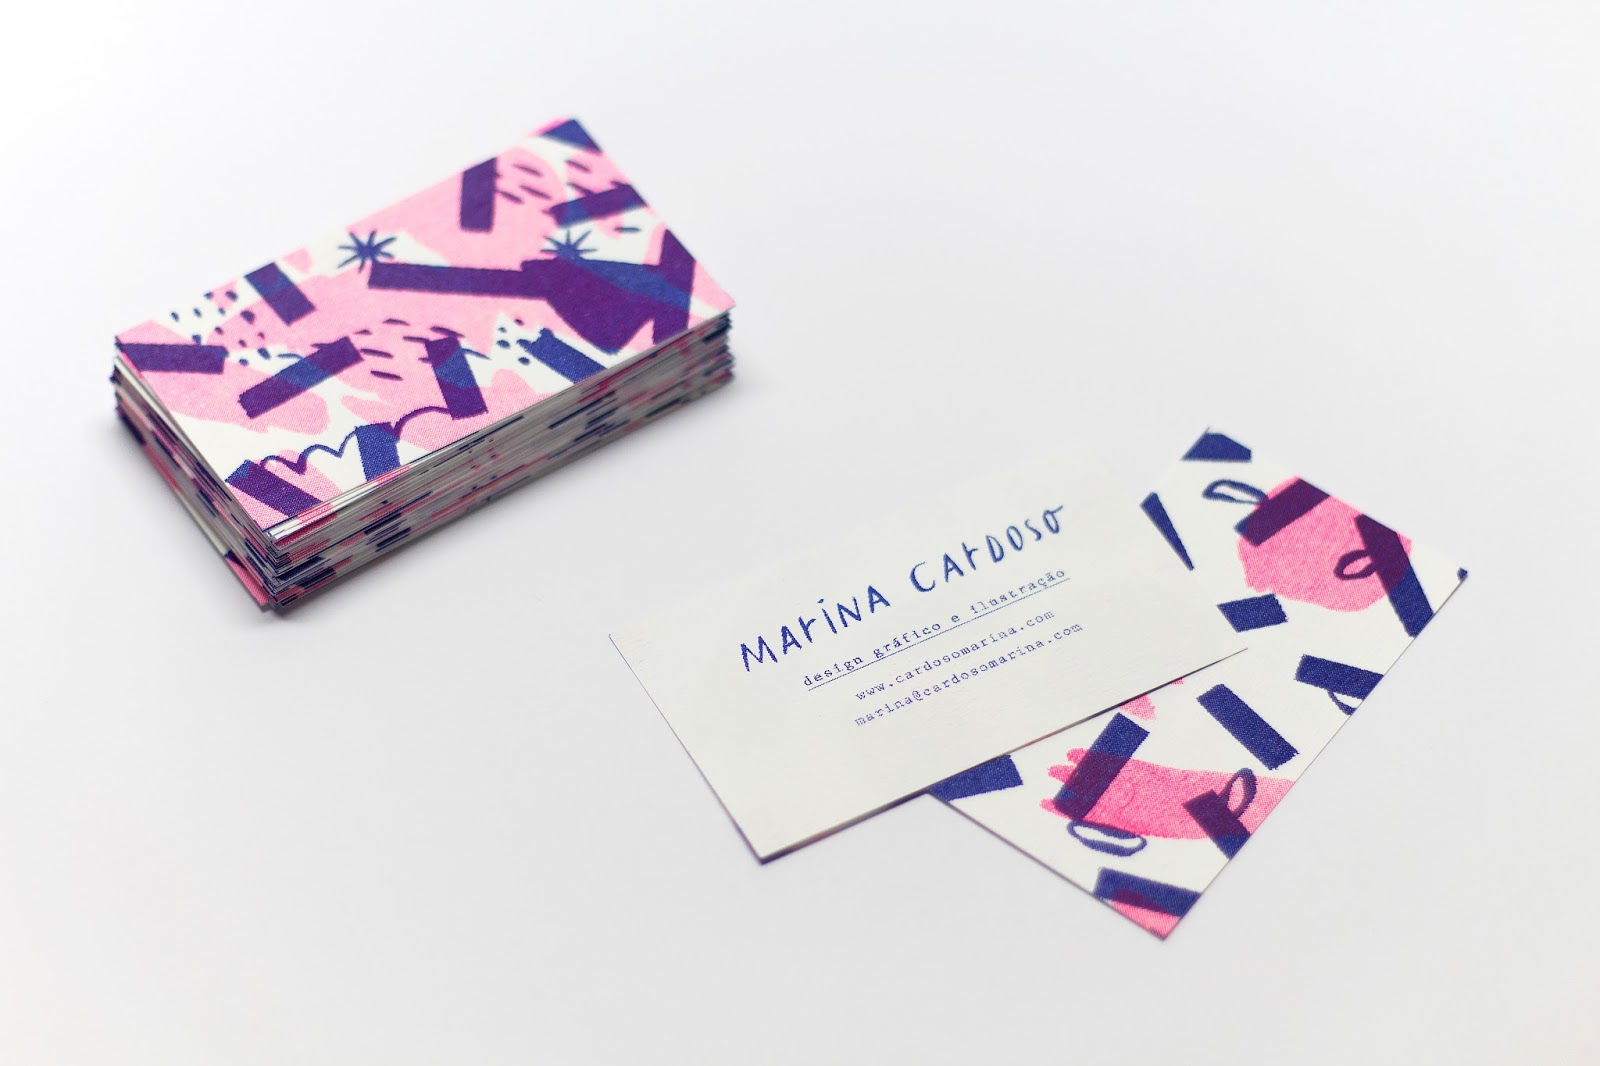 Good design makes me happy: Marina Cardoso Business Cards